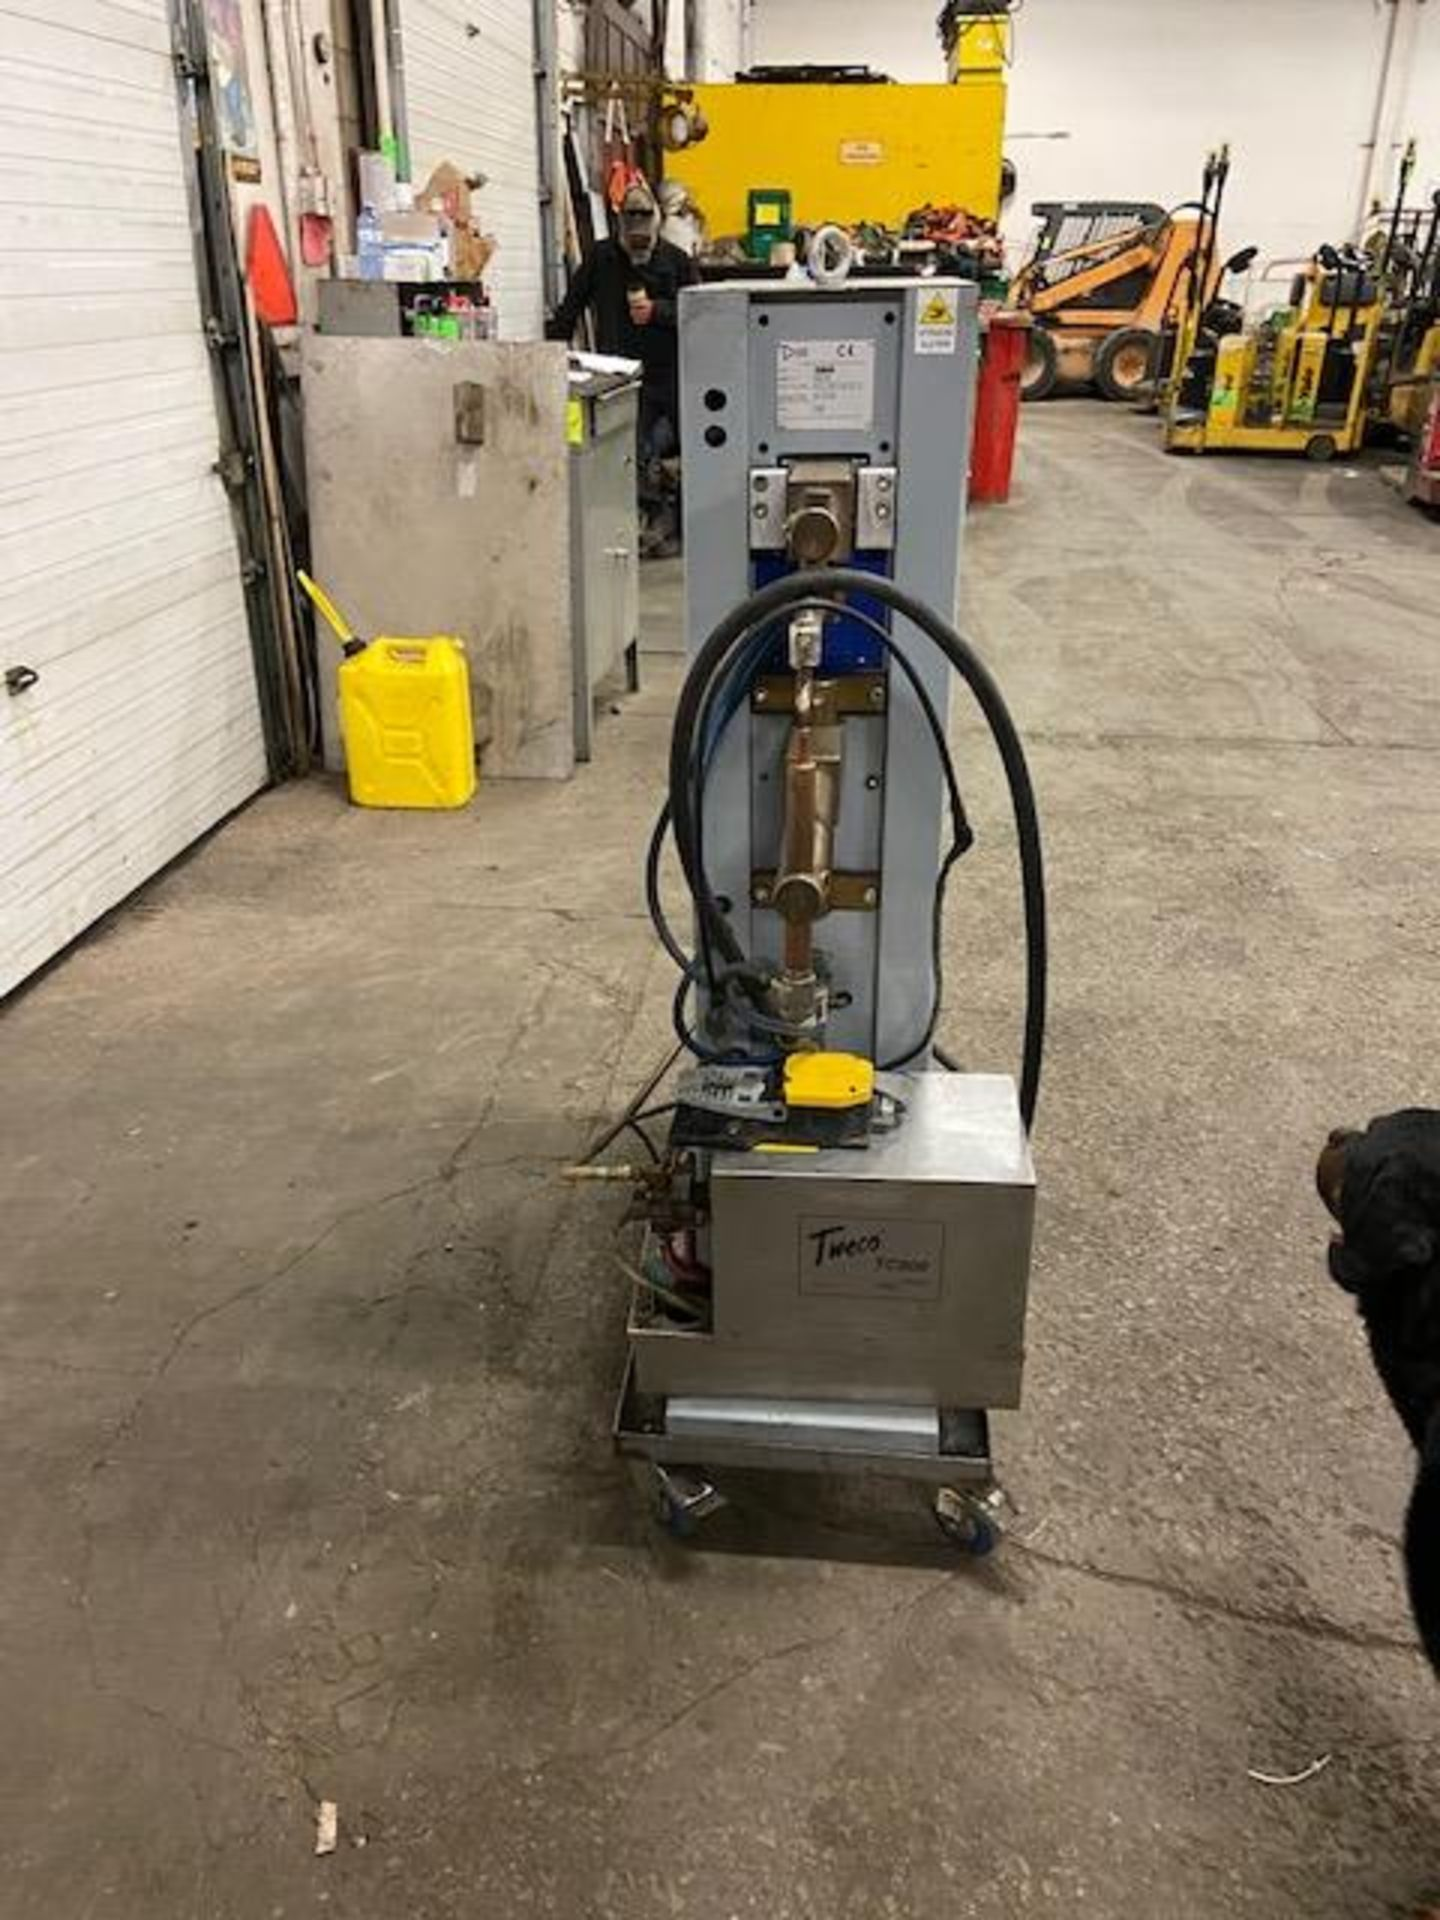 Mawer Spot Welder Unit 25 KVA model PBP162 PEI-POINT Made in Italy - 1 phase complete with foot - Image 3 of 3